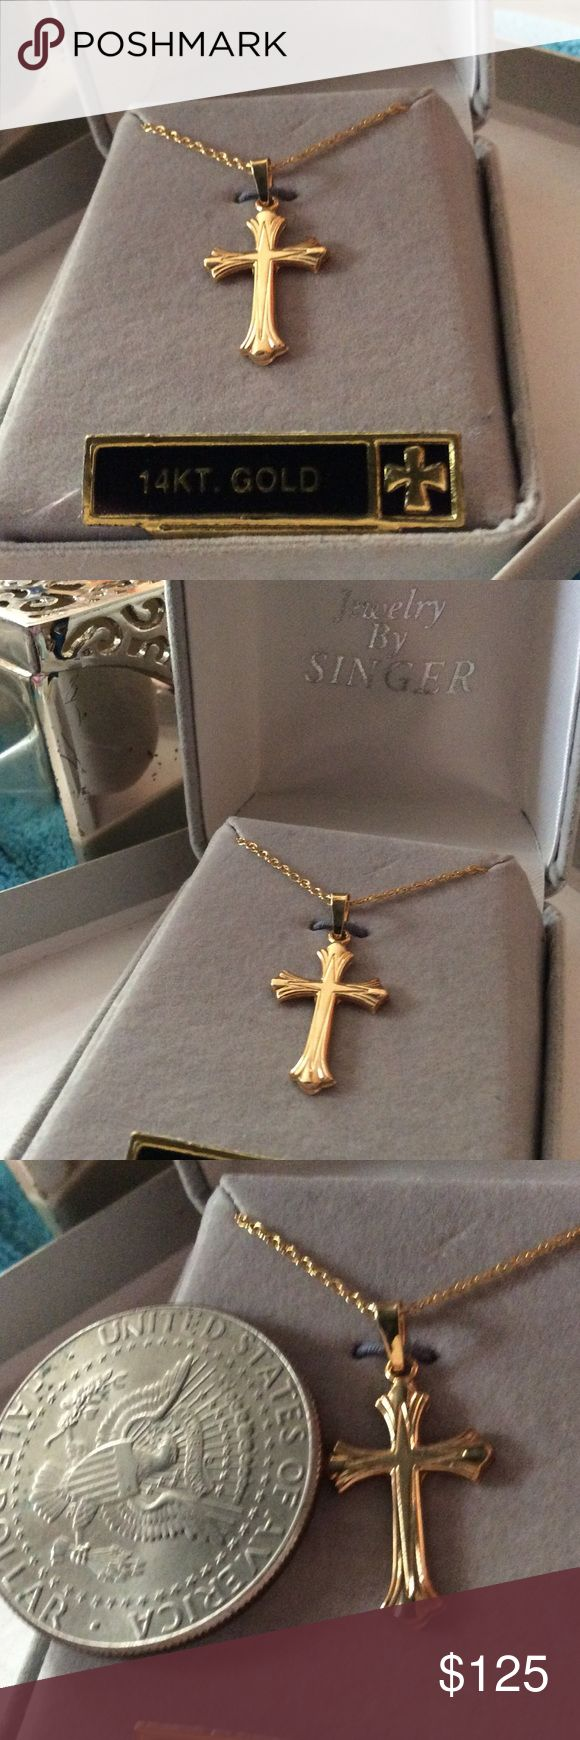 Jewelry by Singer 14 Karat gold chain and cross.🎁 I have this set in gold 14 k, brand new on box For Sale great present🎁🎁🎁🎁🎁🎉💥🎉💥🎄🎄🎄I send it with the box.brand new.And cross chain. singer Jewelry Necklaces